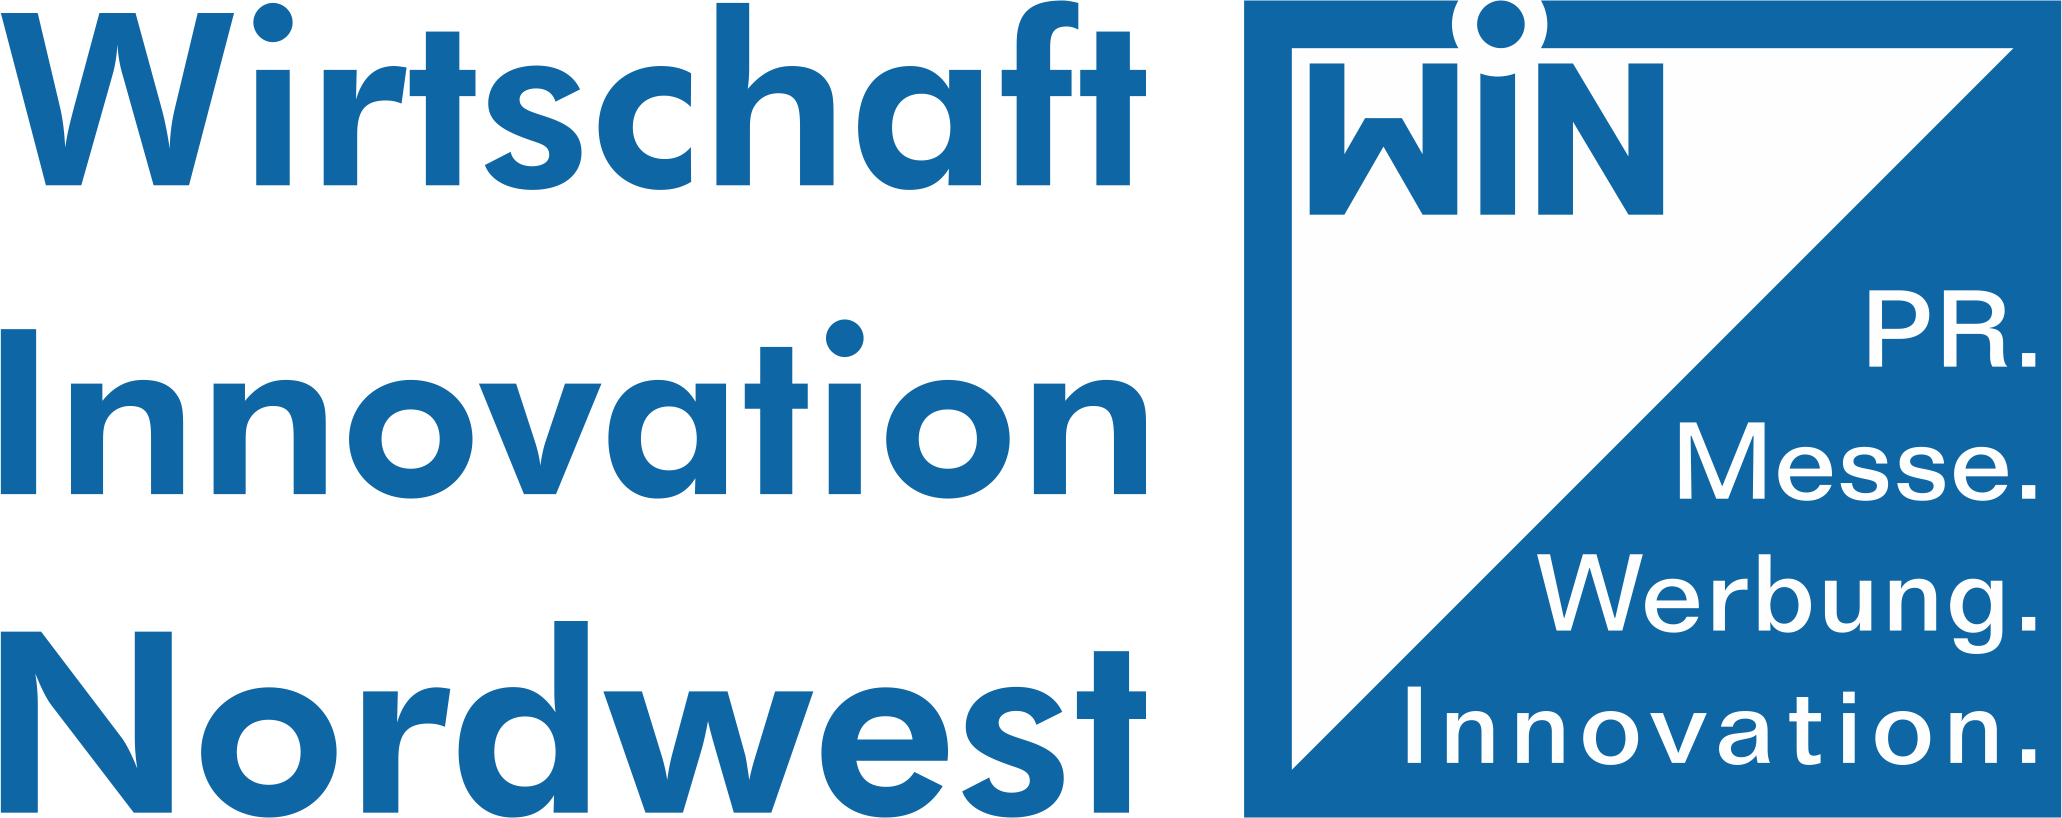 Wirtschaft Innovation Nordwest